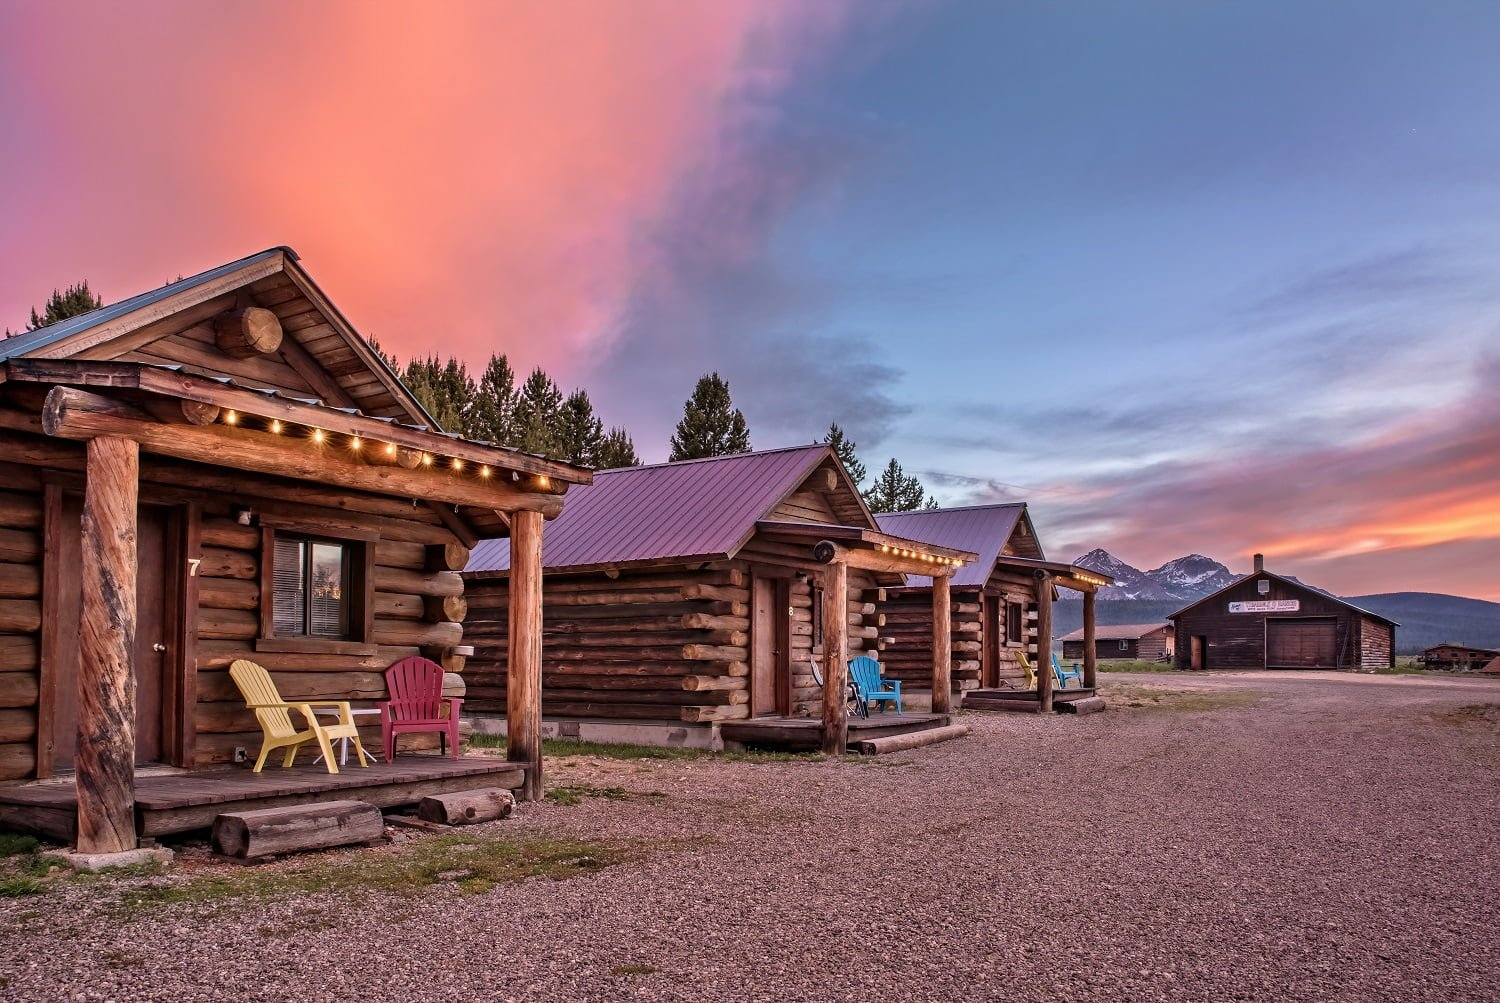 Triangle C Cabins with the sky in the background